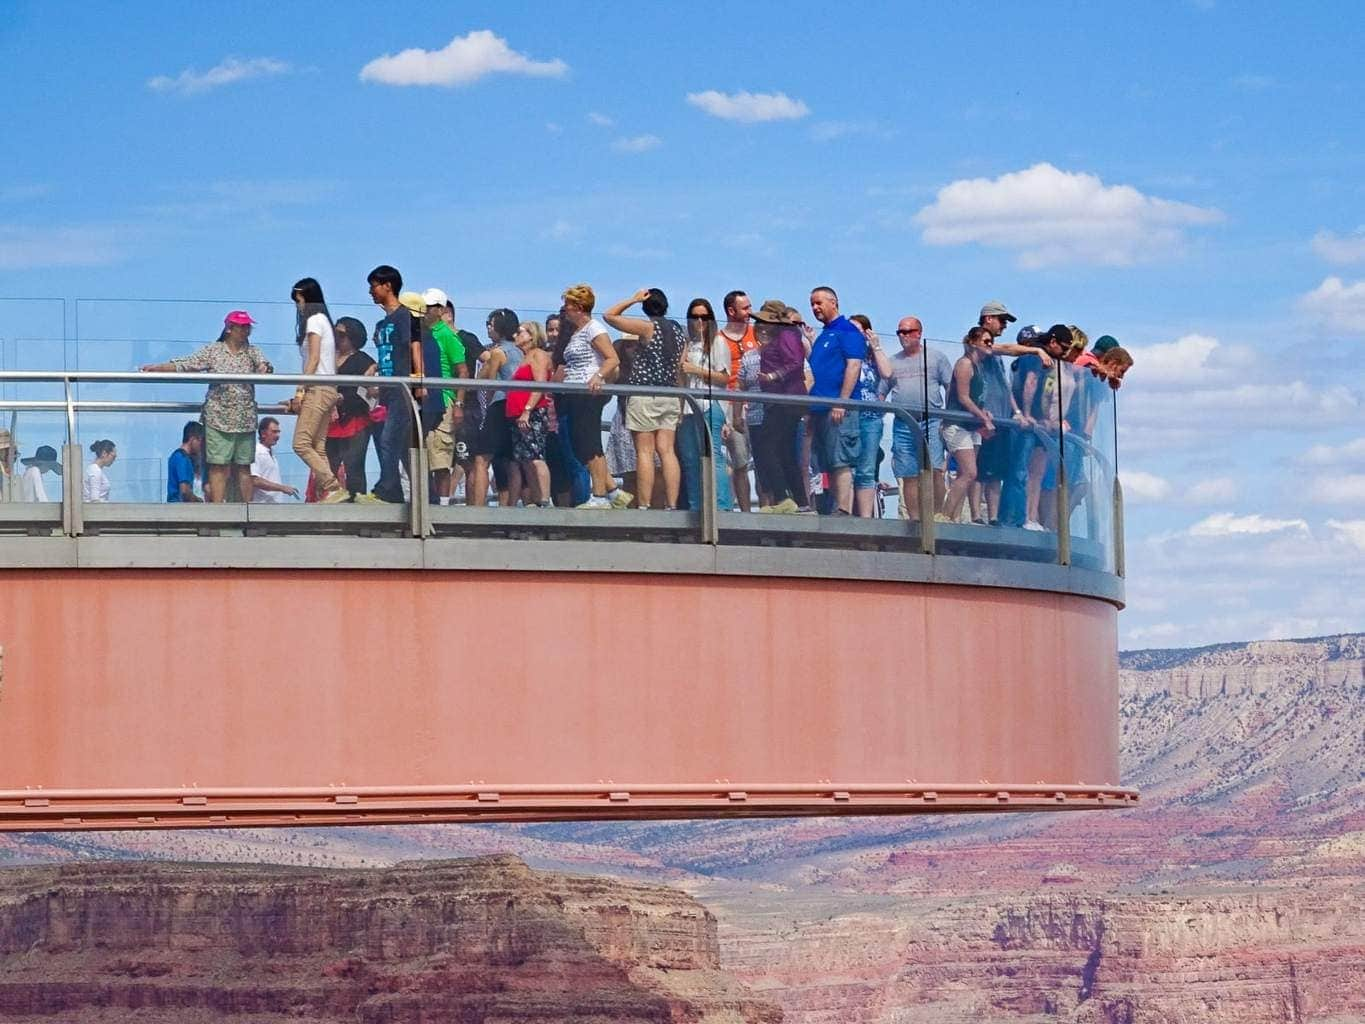 SkyWalk in Arizona